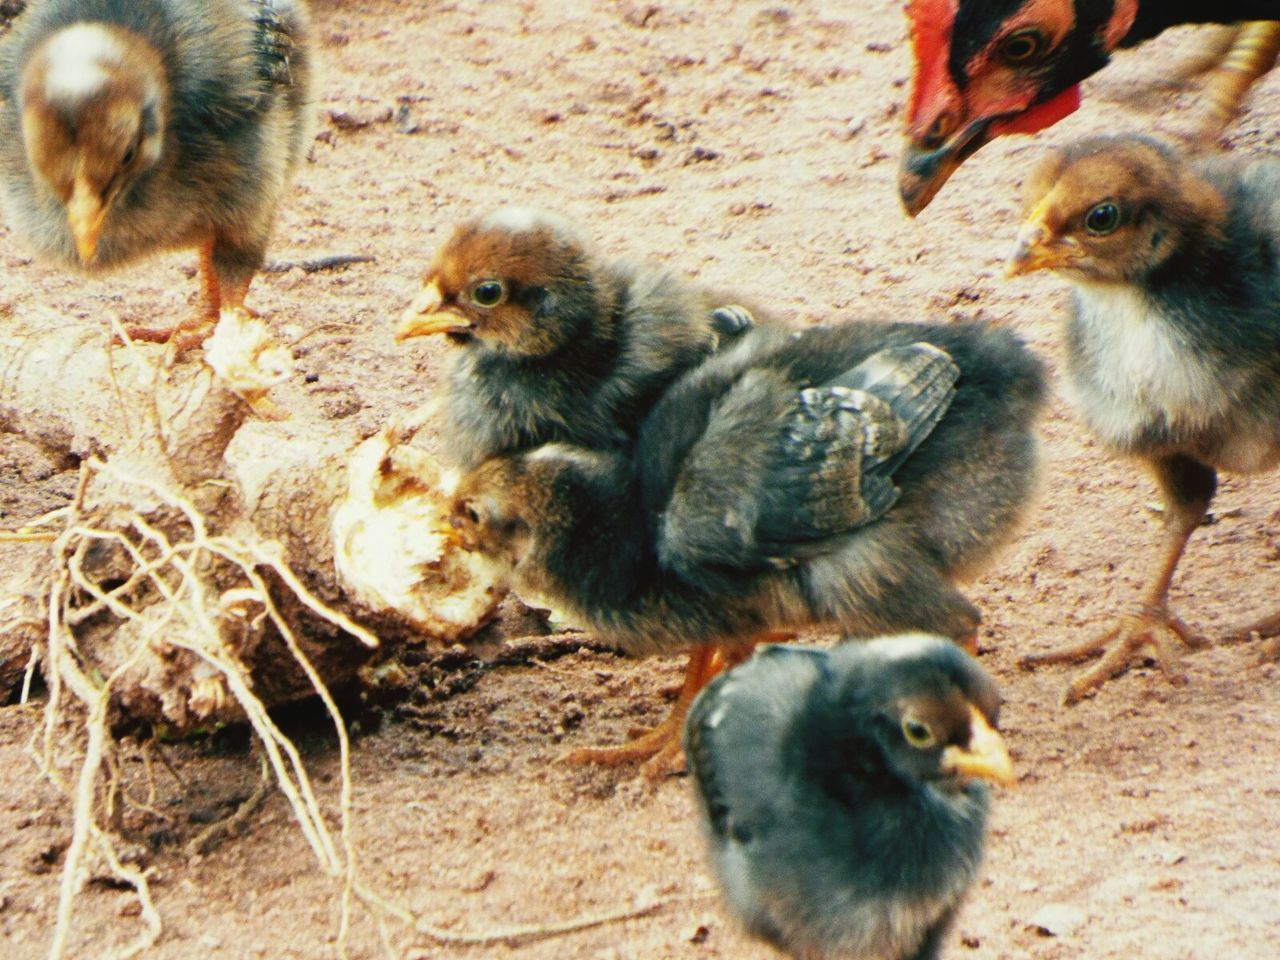 bird, animal themes, domestic animals, young bird, chicken - bird, high angle view, livestock, young animal, baby chicken, no people, outdoors, day, field, nature, close-up